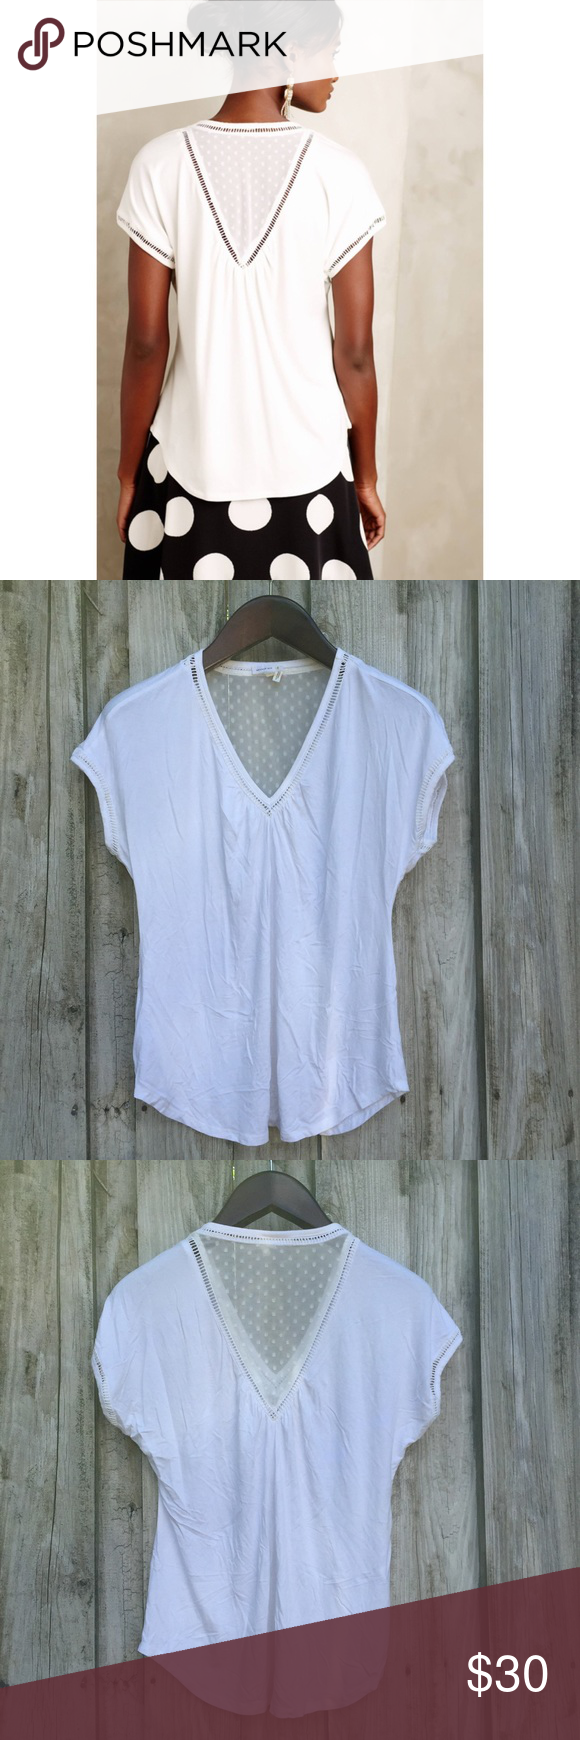 Antrhopologie Meadow Rue Chiffon-spliced Tee Condition: pre-owned. Normal wear. No noted defects. | NO TRADES Anthropologie Tops